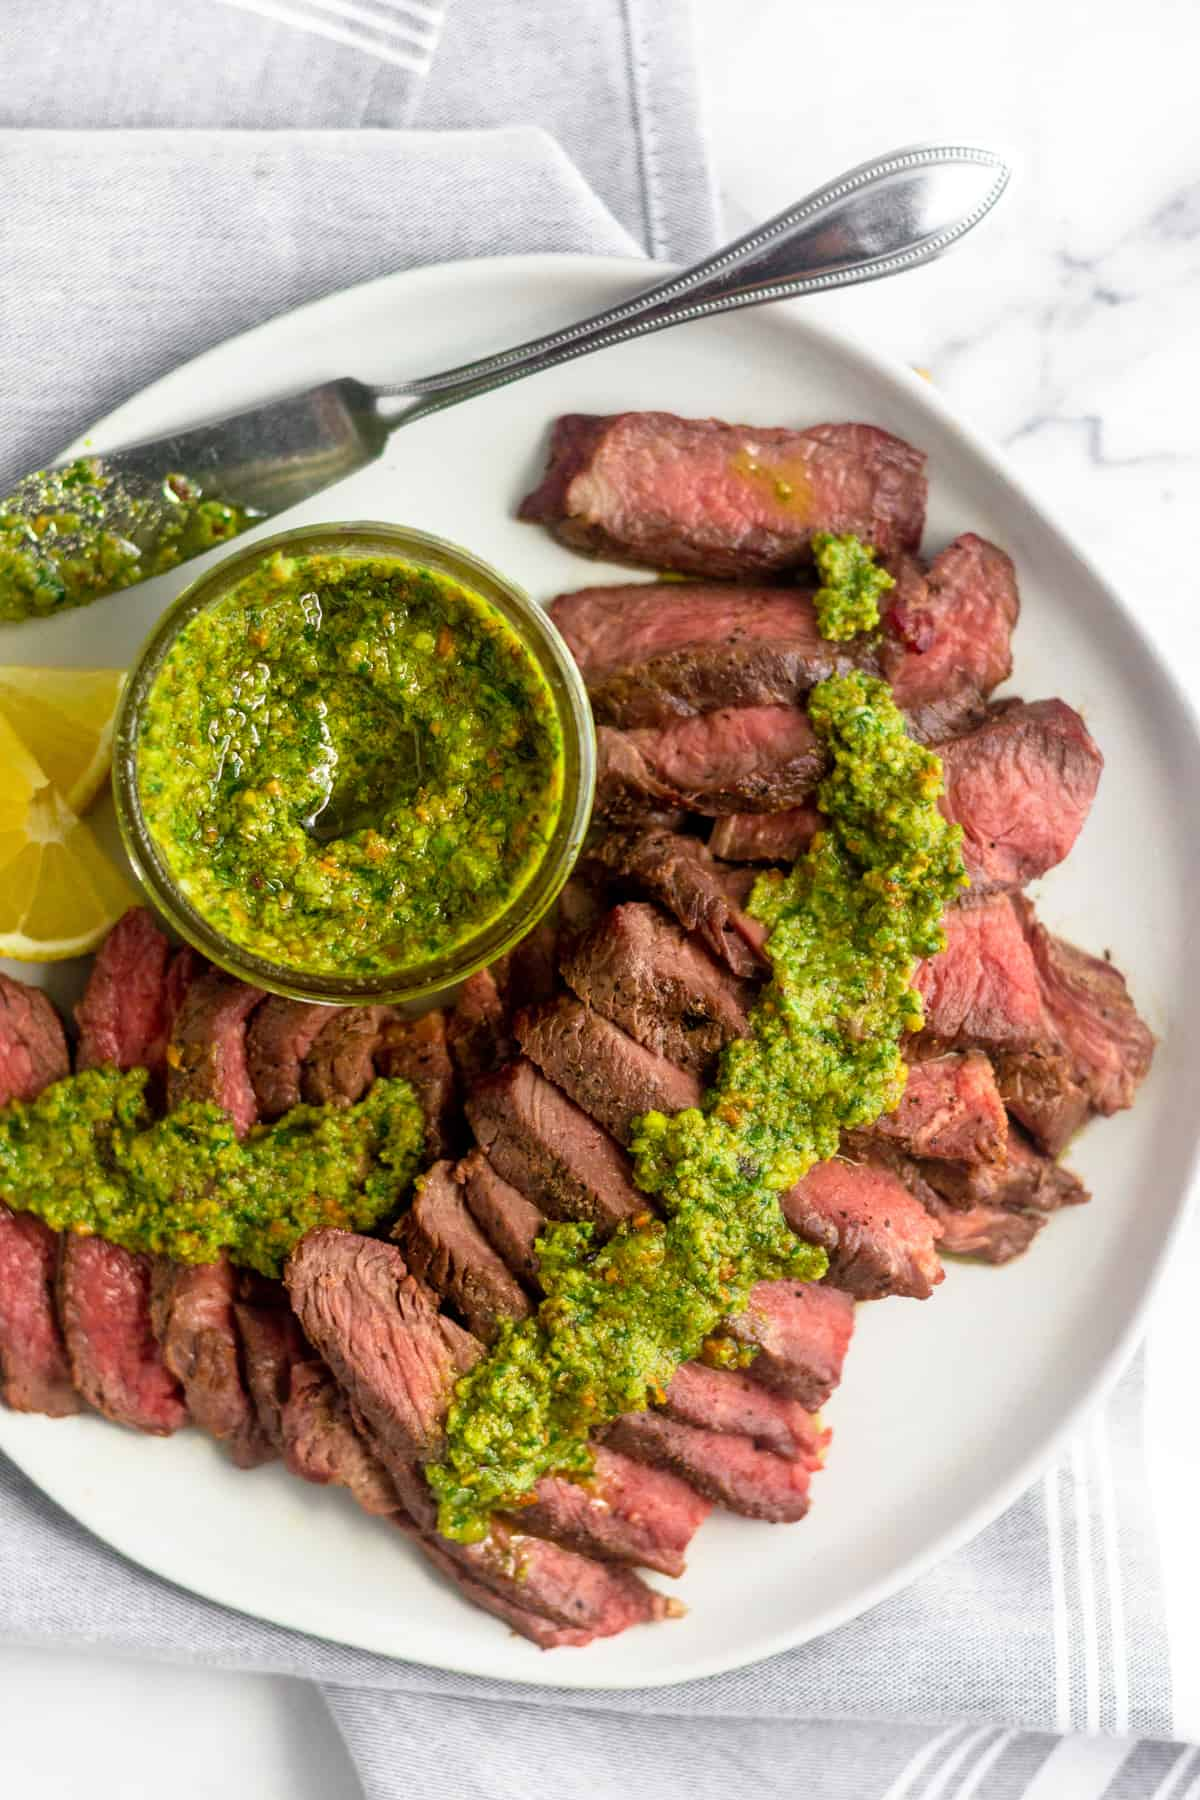 White plate with cut up grilled steak with pistachio pesto on top of it along with a jar of pistachio pesto and sliced lemon